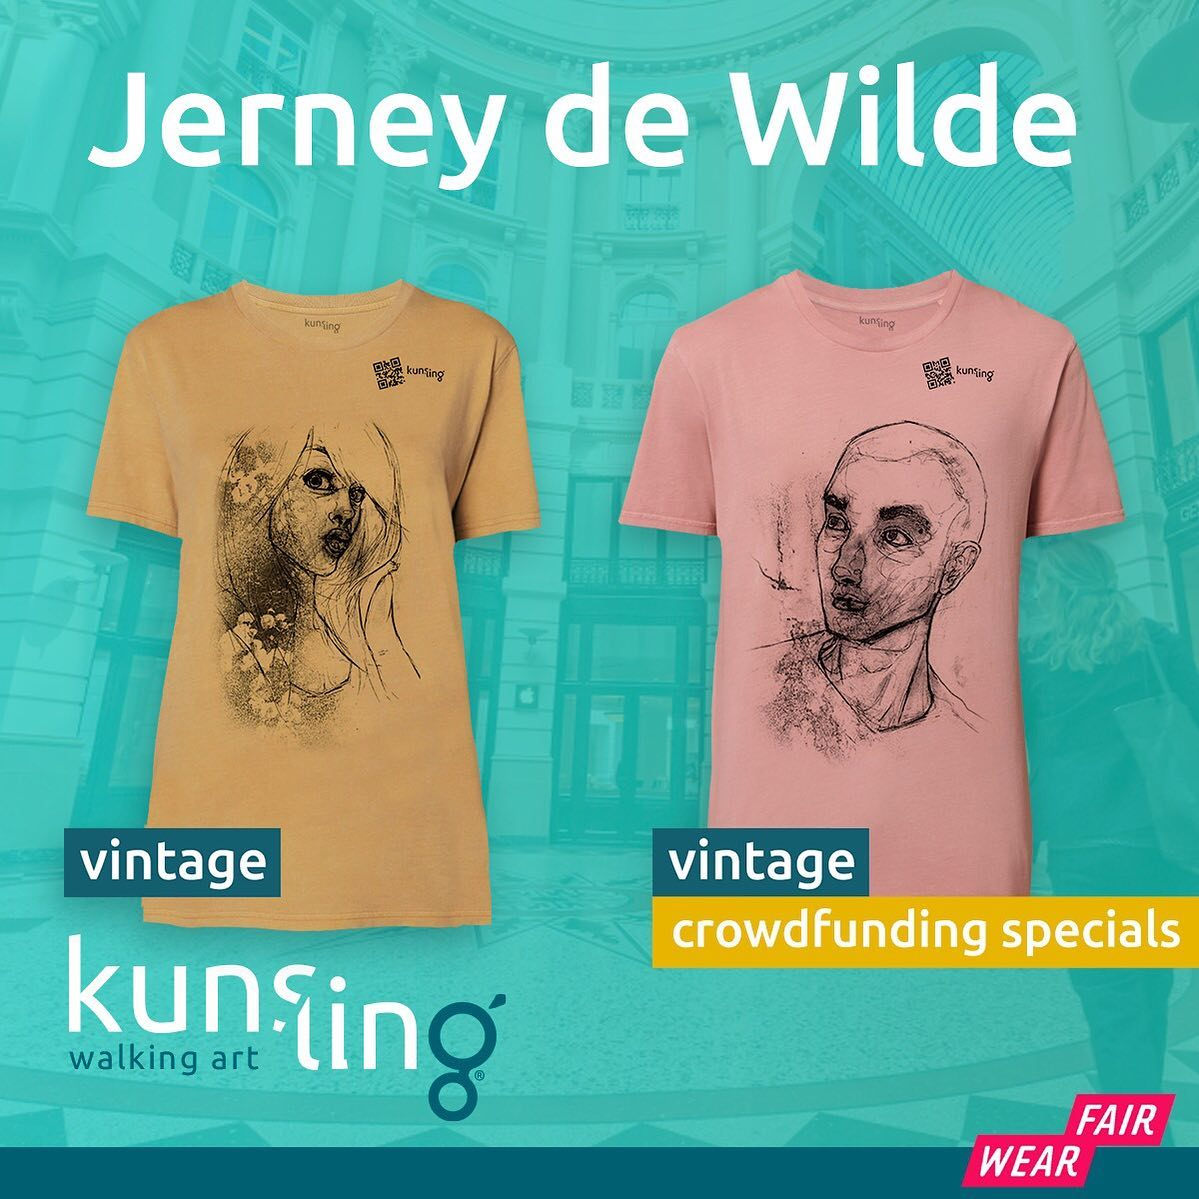 I would like to make some noise for a supercool project I'm a part of: Kunsling! Organic and sustainable clothing with quality prints of fine art pieces, linked to original art by QR. At the moment we are doing a Crowfdfunding at @voordekunst to start it all up with a selection of shirts/hoodies/longsleeves and these two are available with my designs! Go get them or one of the other cool designs and support this project :) Thank you! 🧡Go to https://www.kunsling.nl/fundraiser/ or check out @kunslingstore for more info :)#sustainablefashion #walkingart #tshirts #voordekunst #fundraiser #buylocal #supportsmallbusiness